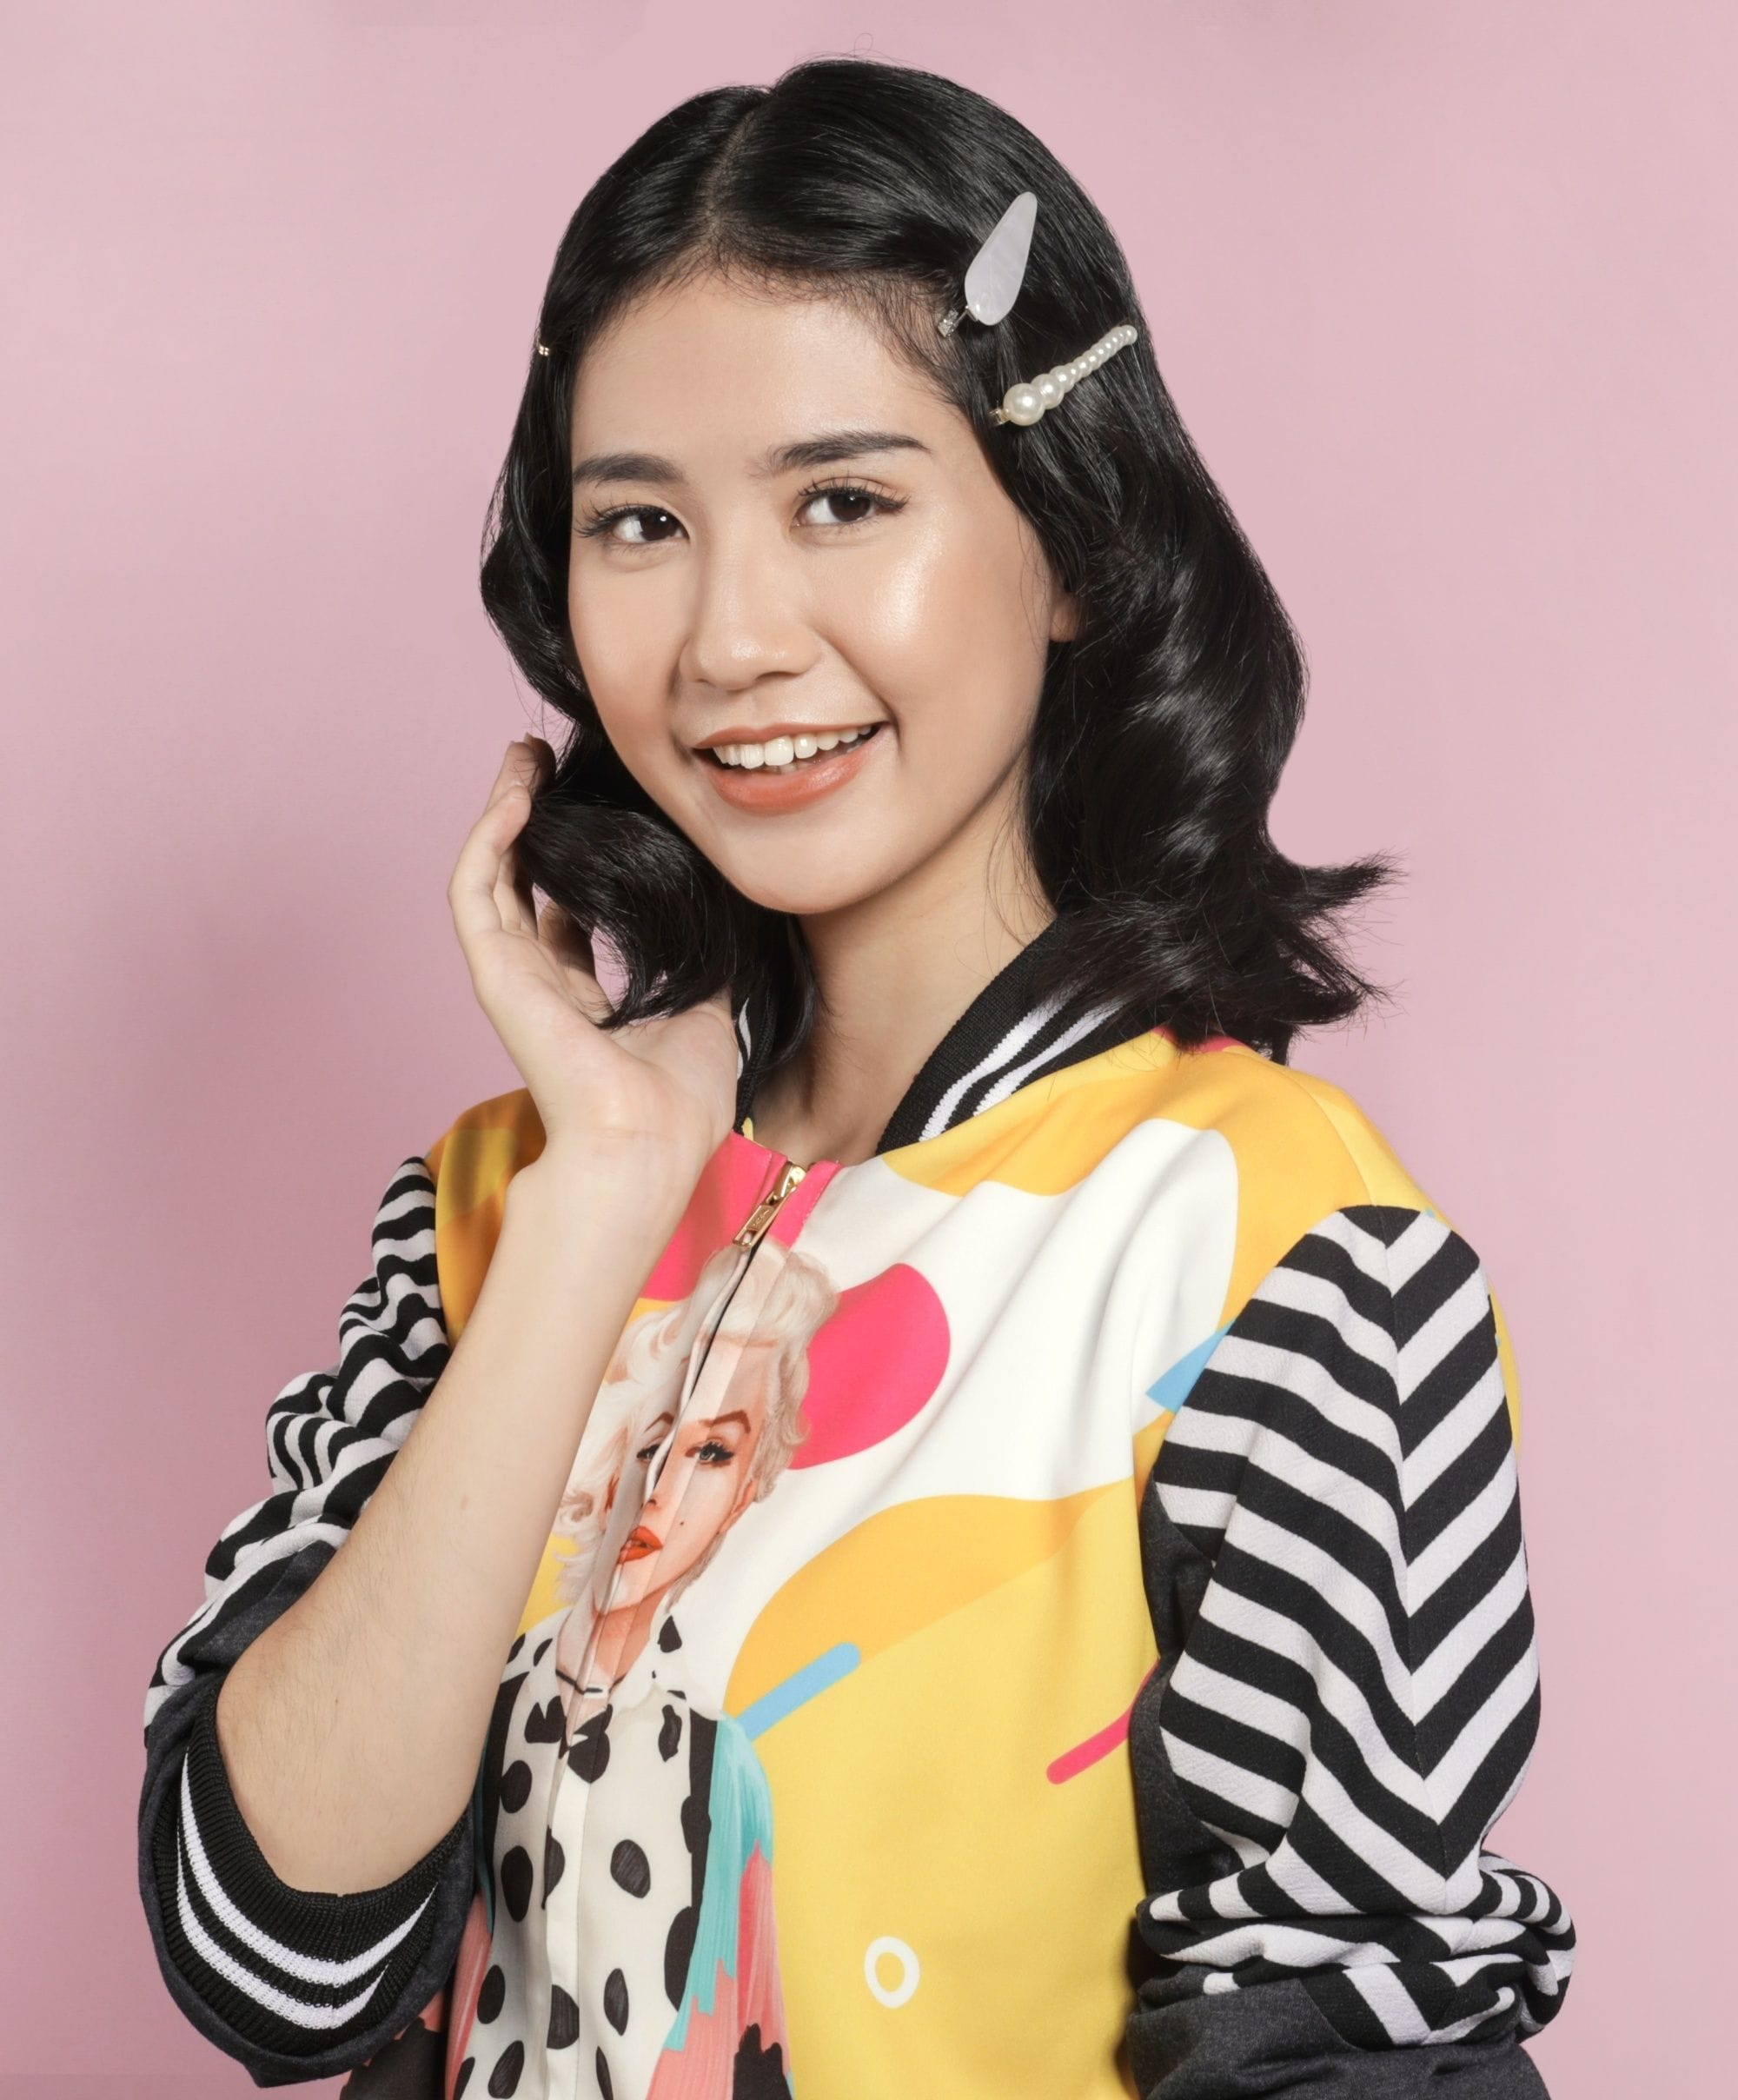 Asian woman with cute hairstyle for short hair wearing a printed jacket and smiling